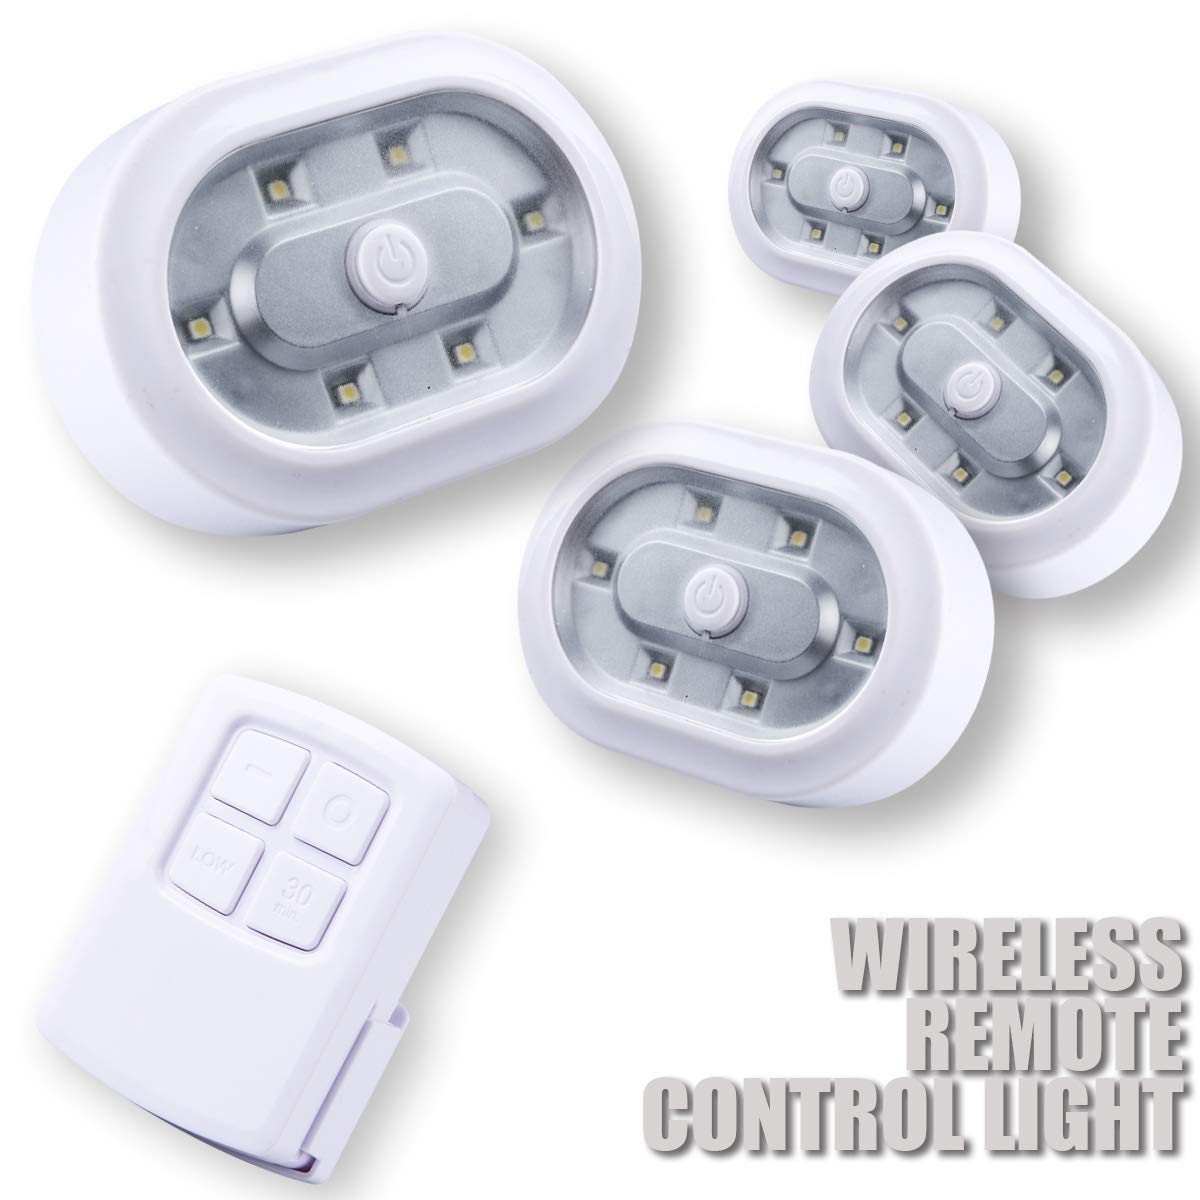 ZTX Wireless LED Puck Light with Remote Control and with 3M Adhesive,Screw,Magnetic,Easy to Install for Closets,Cabinet,Storage,Attics,Shelves Lighting, Include 11 Piece Batteries